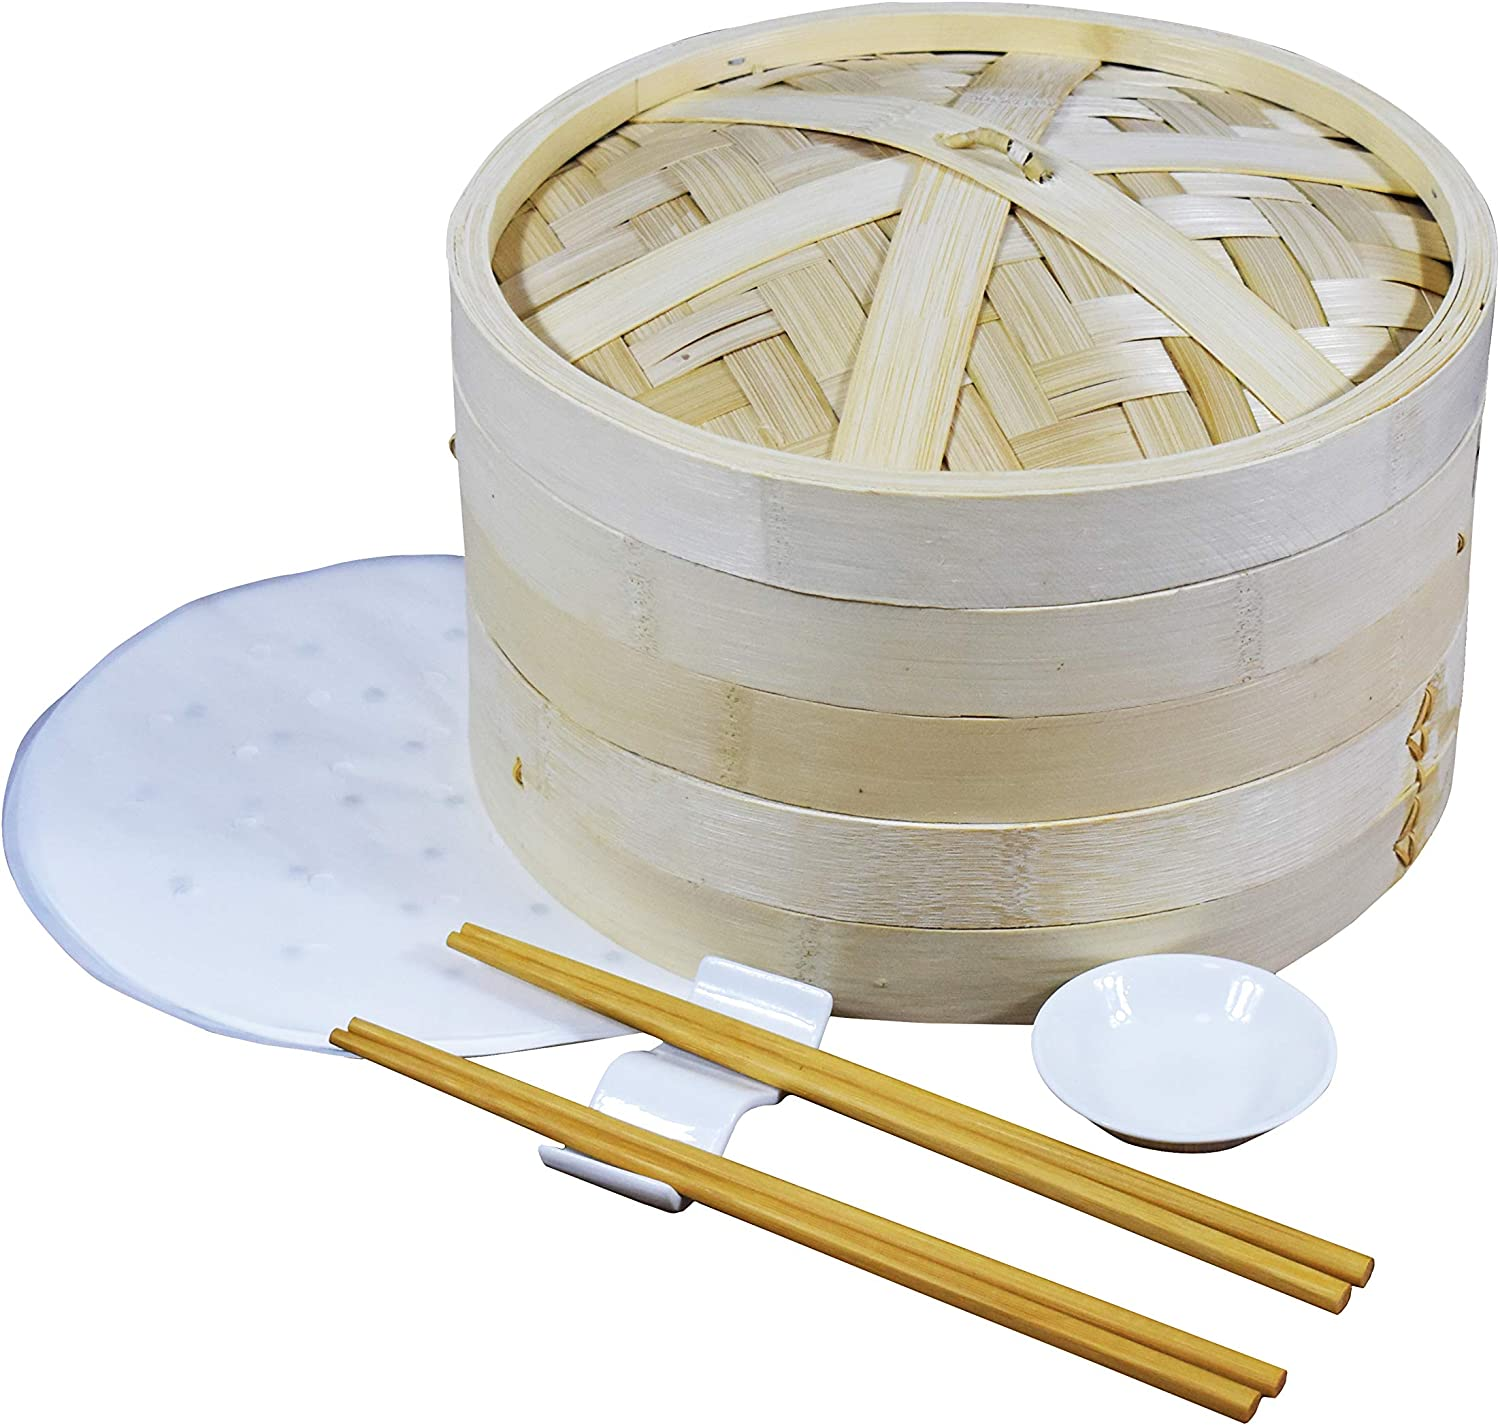 The 2-layer 10-inch bamboo steamer can cook rice, vegetables, meat, etc. This bamboo steamer basket is equipped with 2 pairs of chopsticks, 1 seasoning plate, 1 chopstick holder and 20 steamer papers.